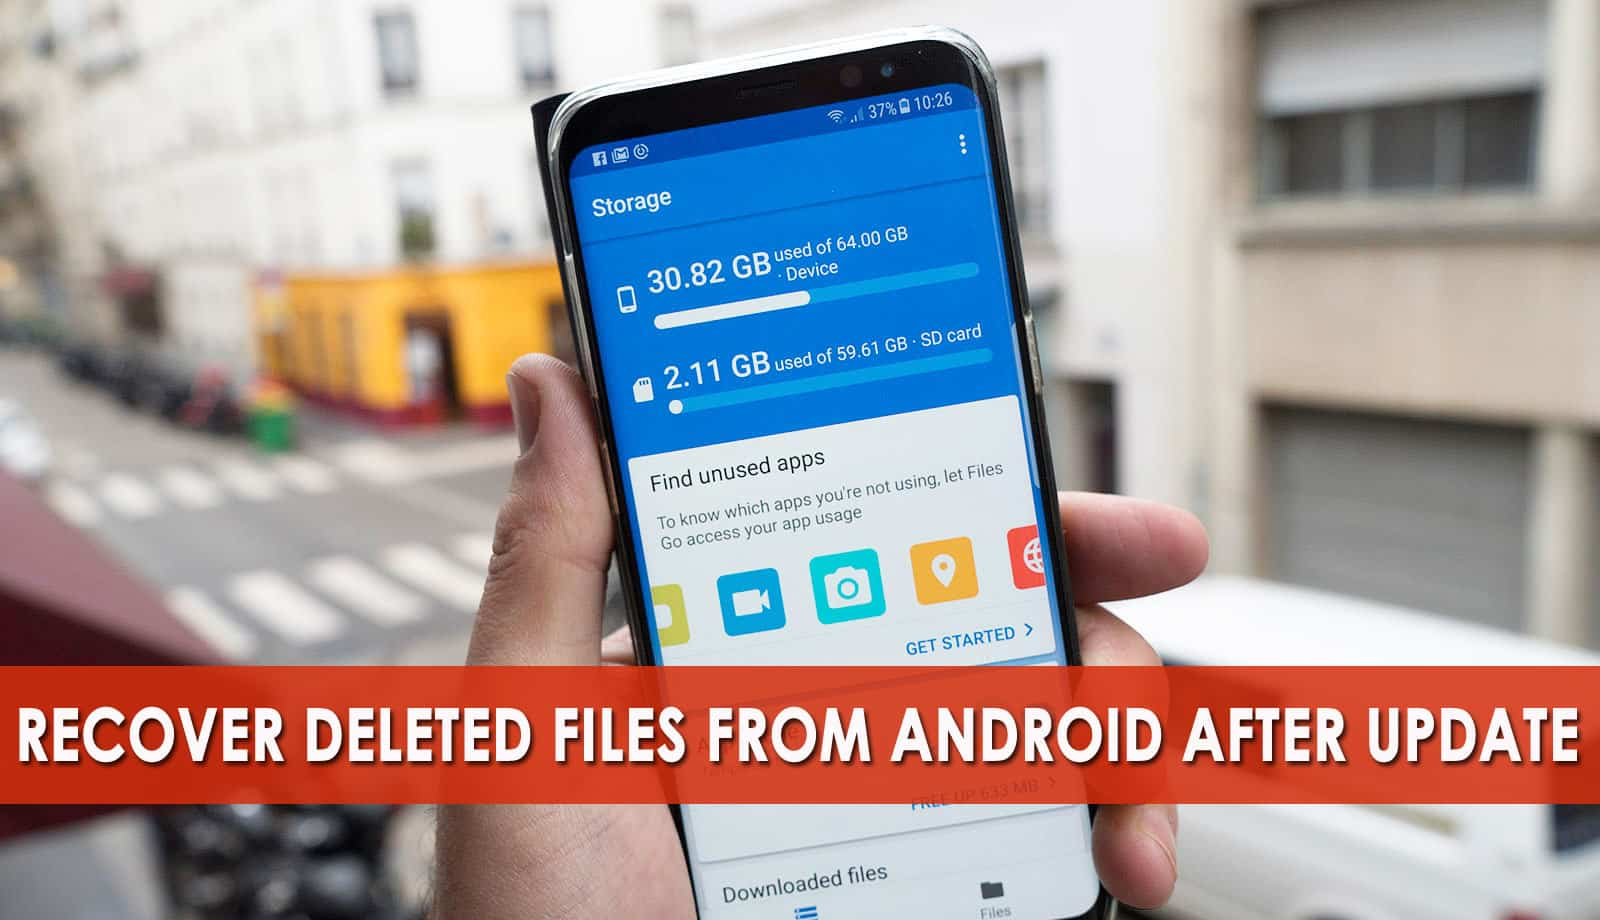 recover deleted files after Android update